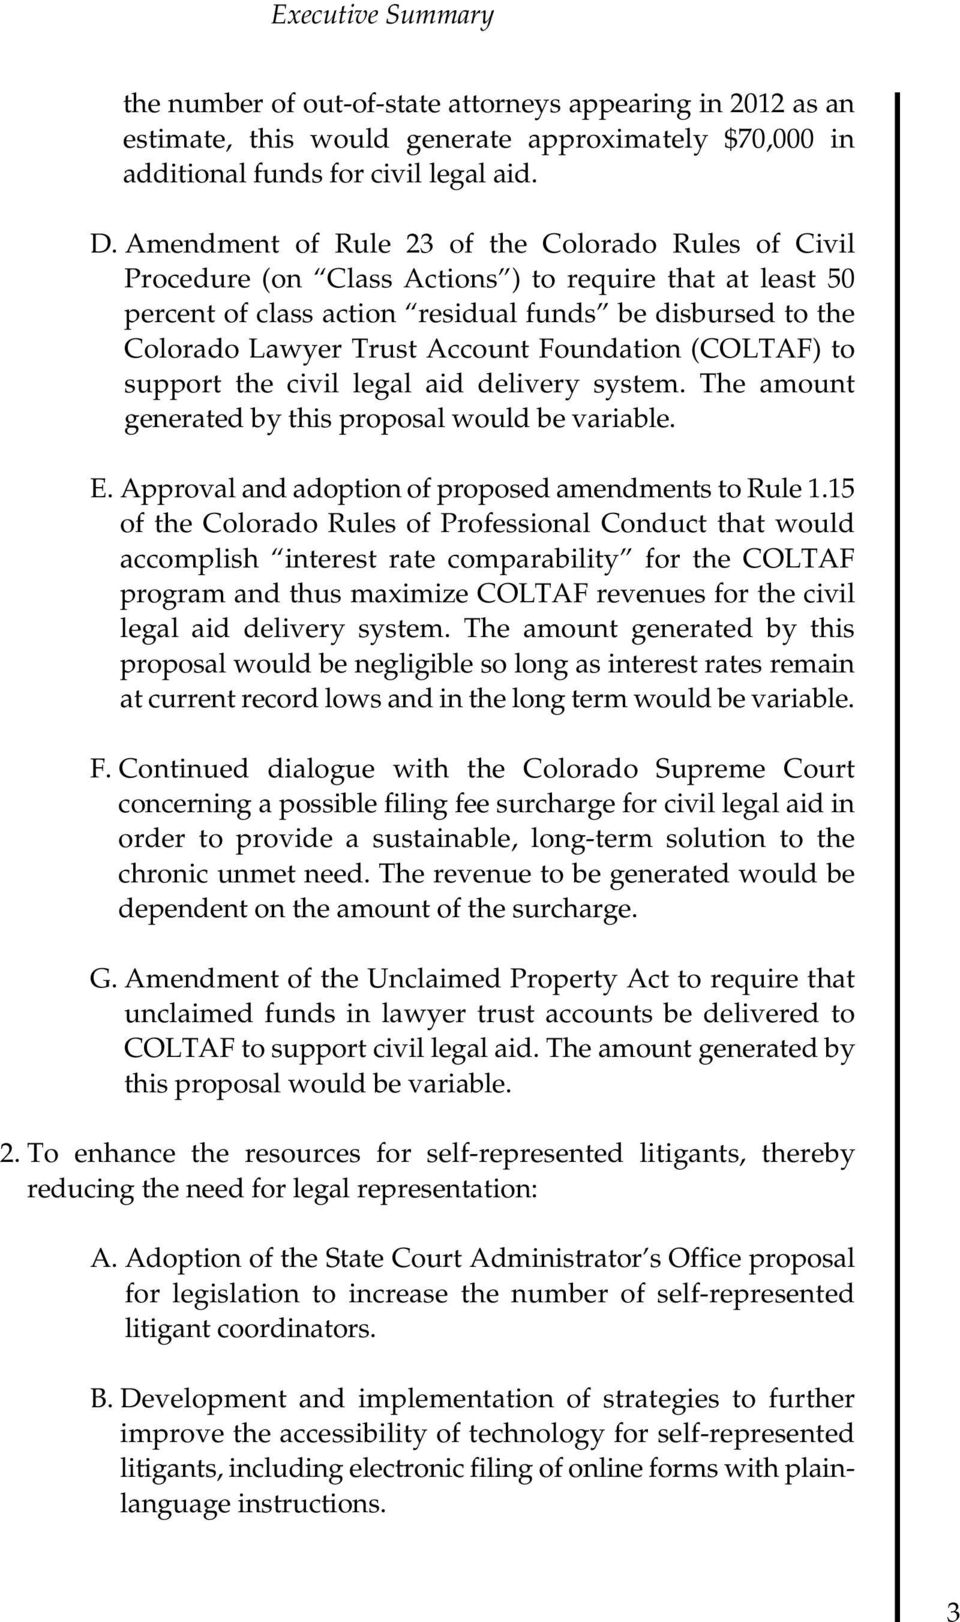 Foundation (COLTAF) to support the civil legal aid delivery system. The amount generated by this proposal would be variable. E. Approval and adoption of proposed amendments to Rule 1.